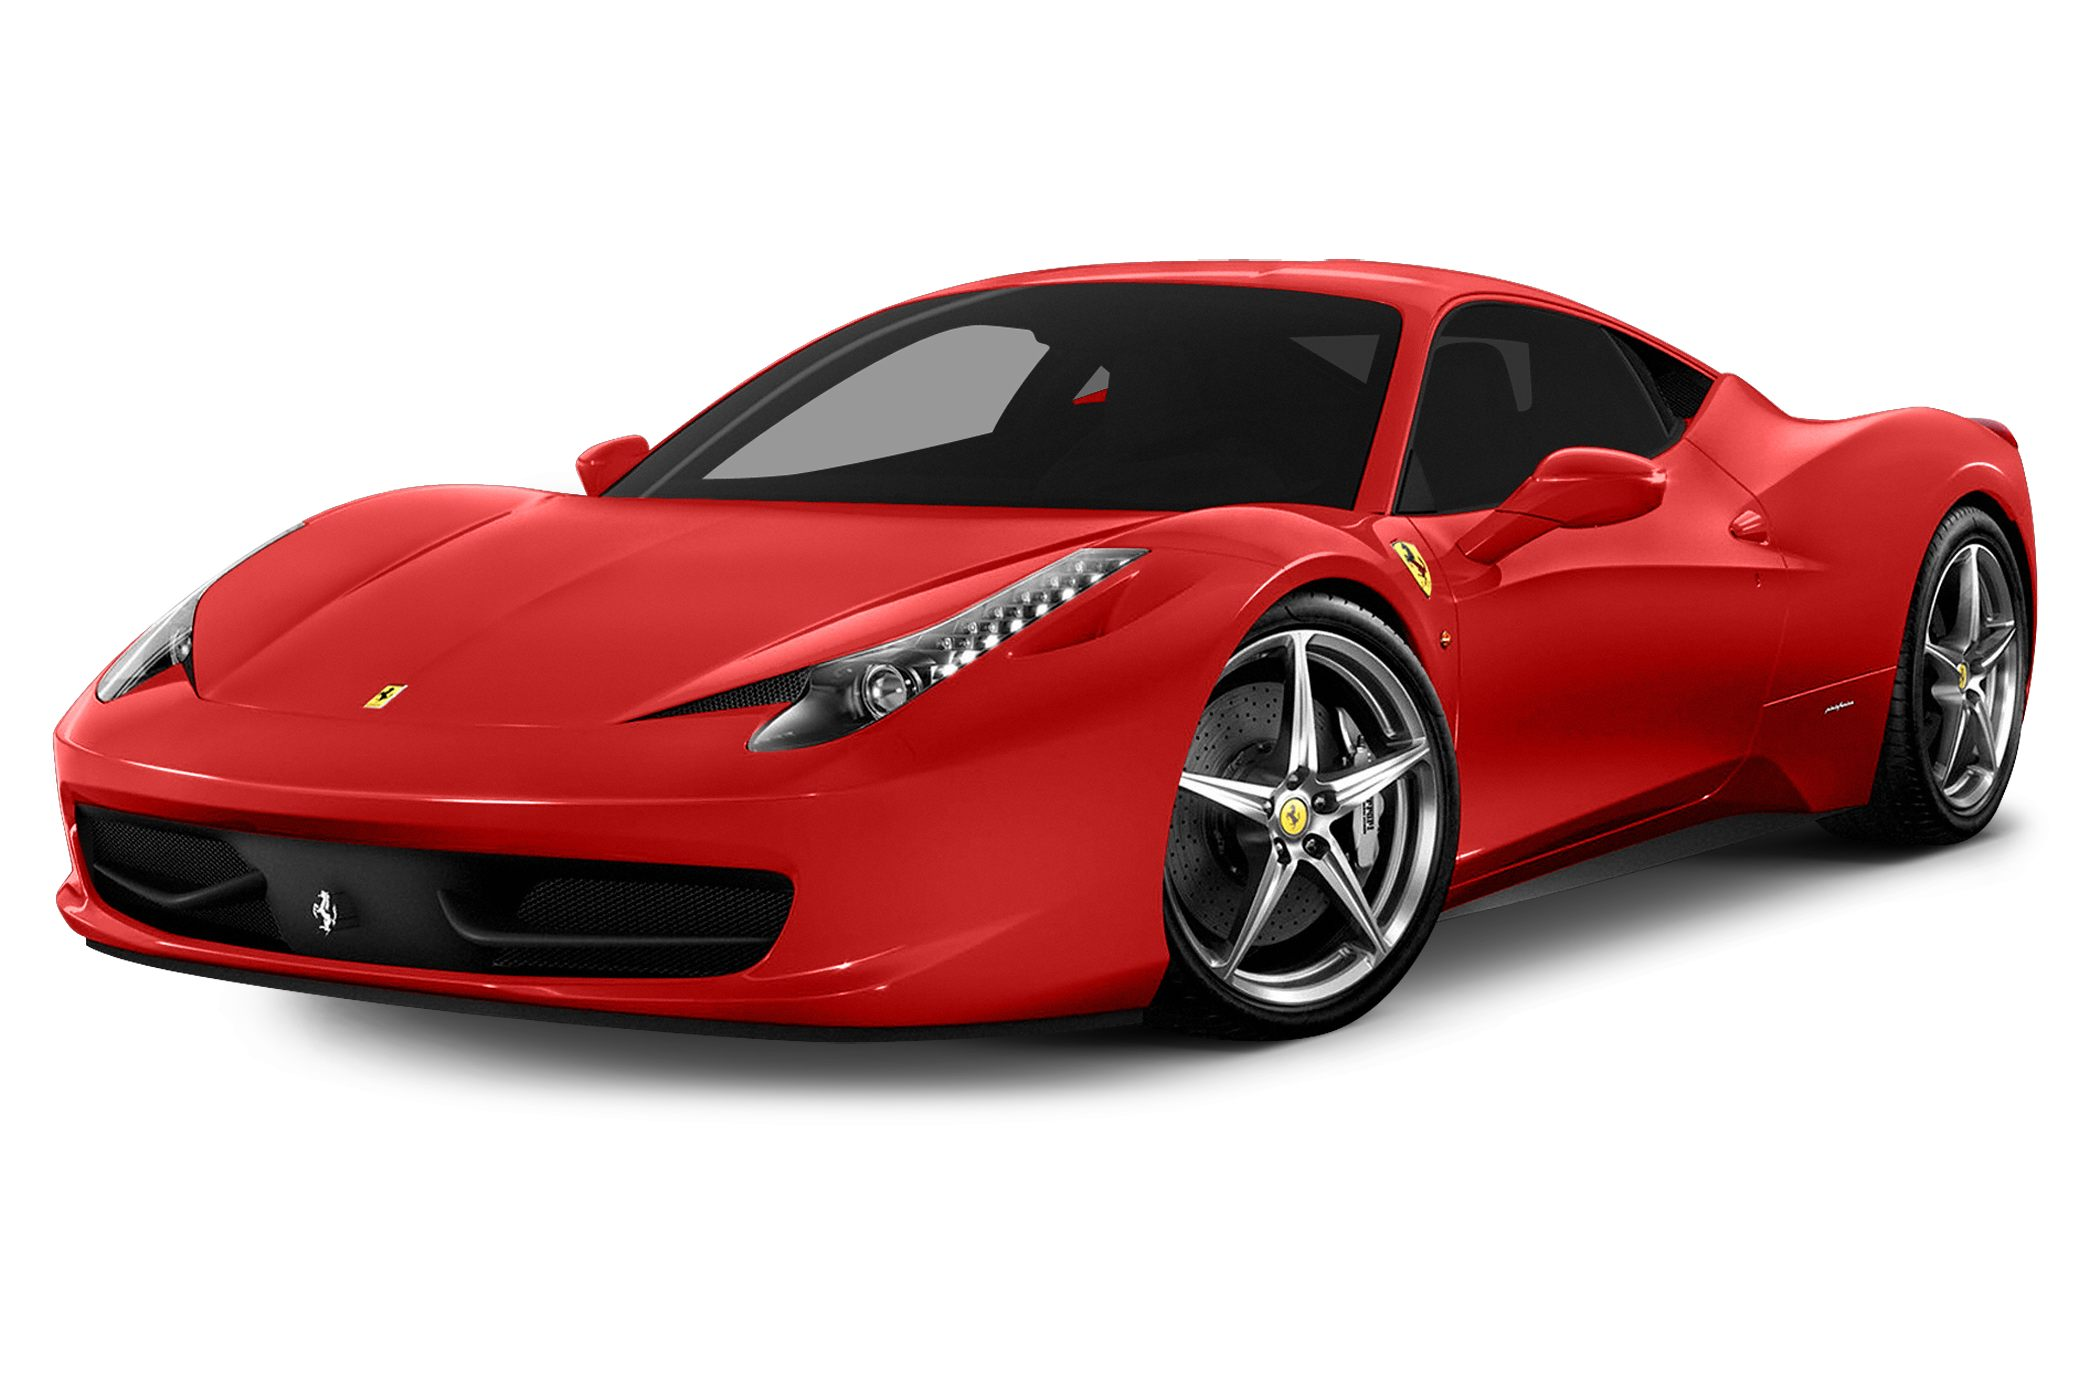 Image result for ferrari 458